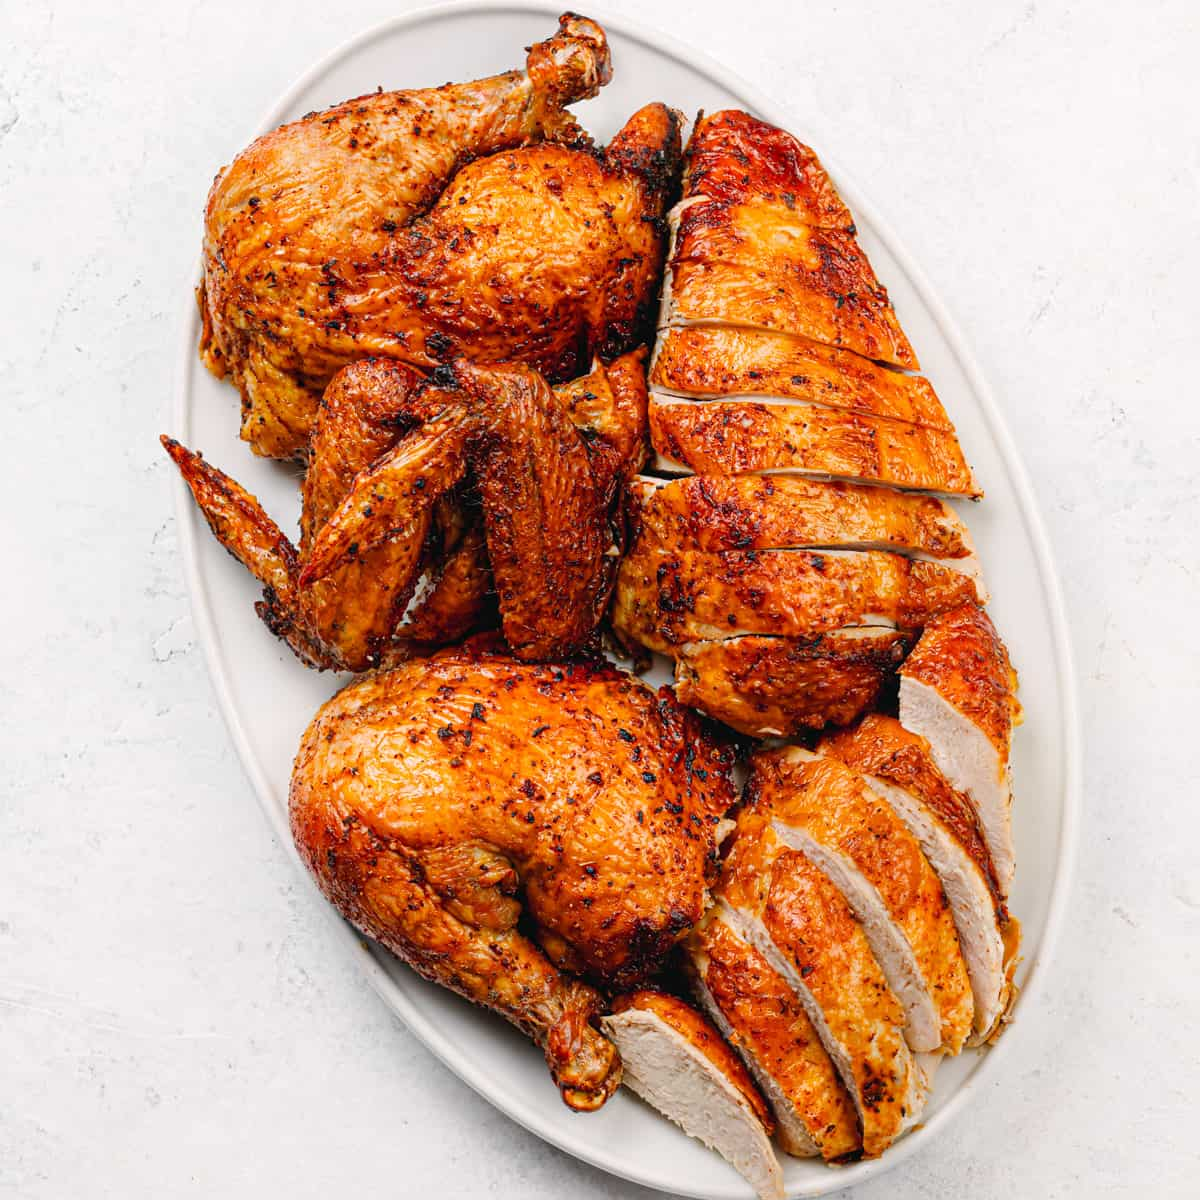 The Best Roasted Chicken Recipe